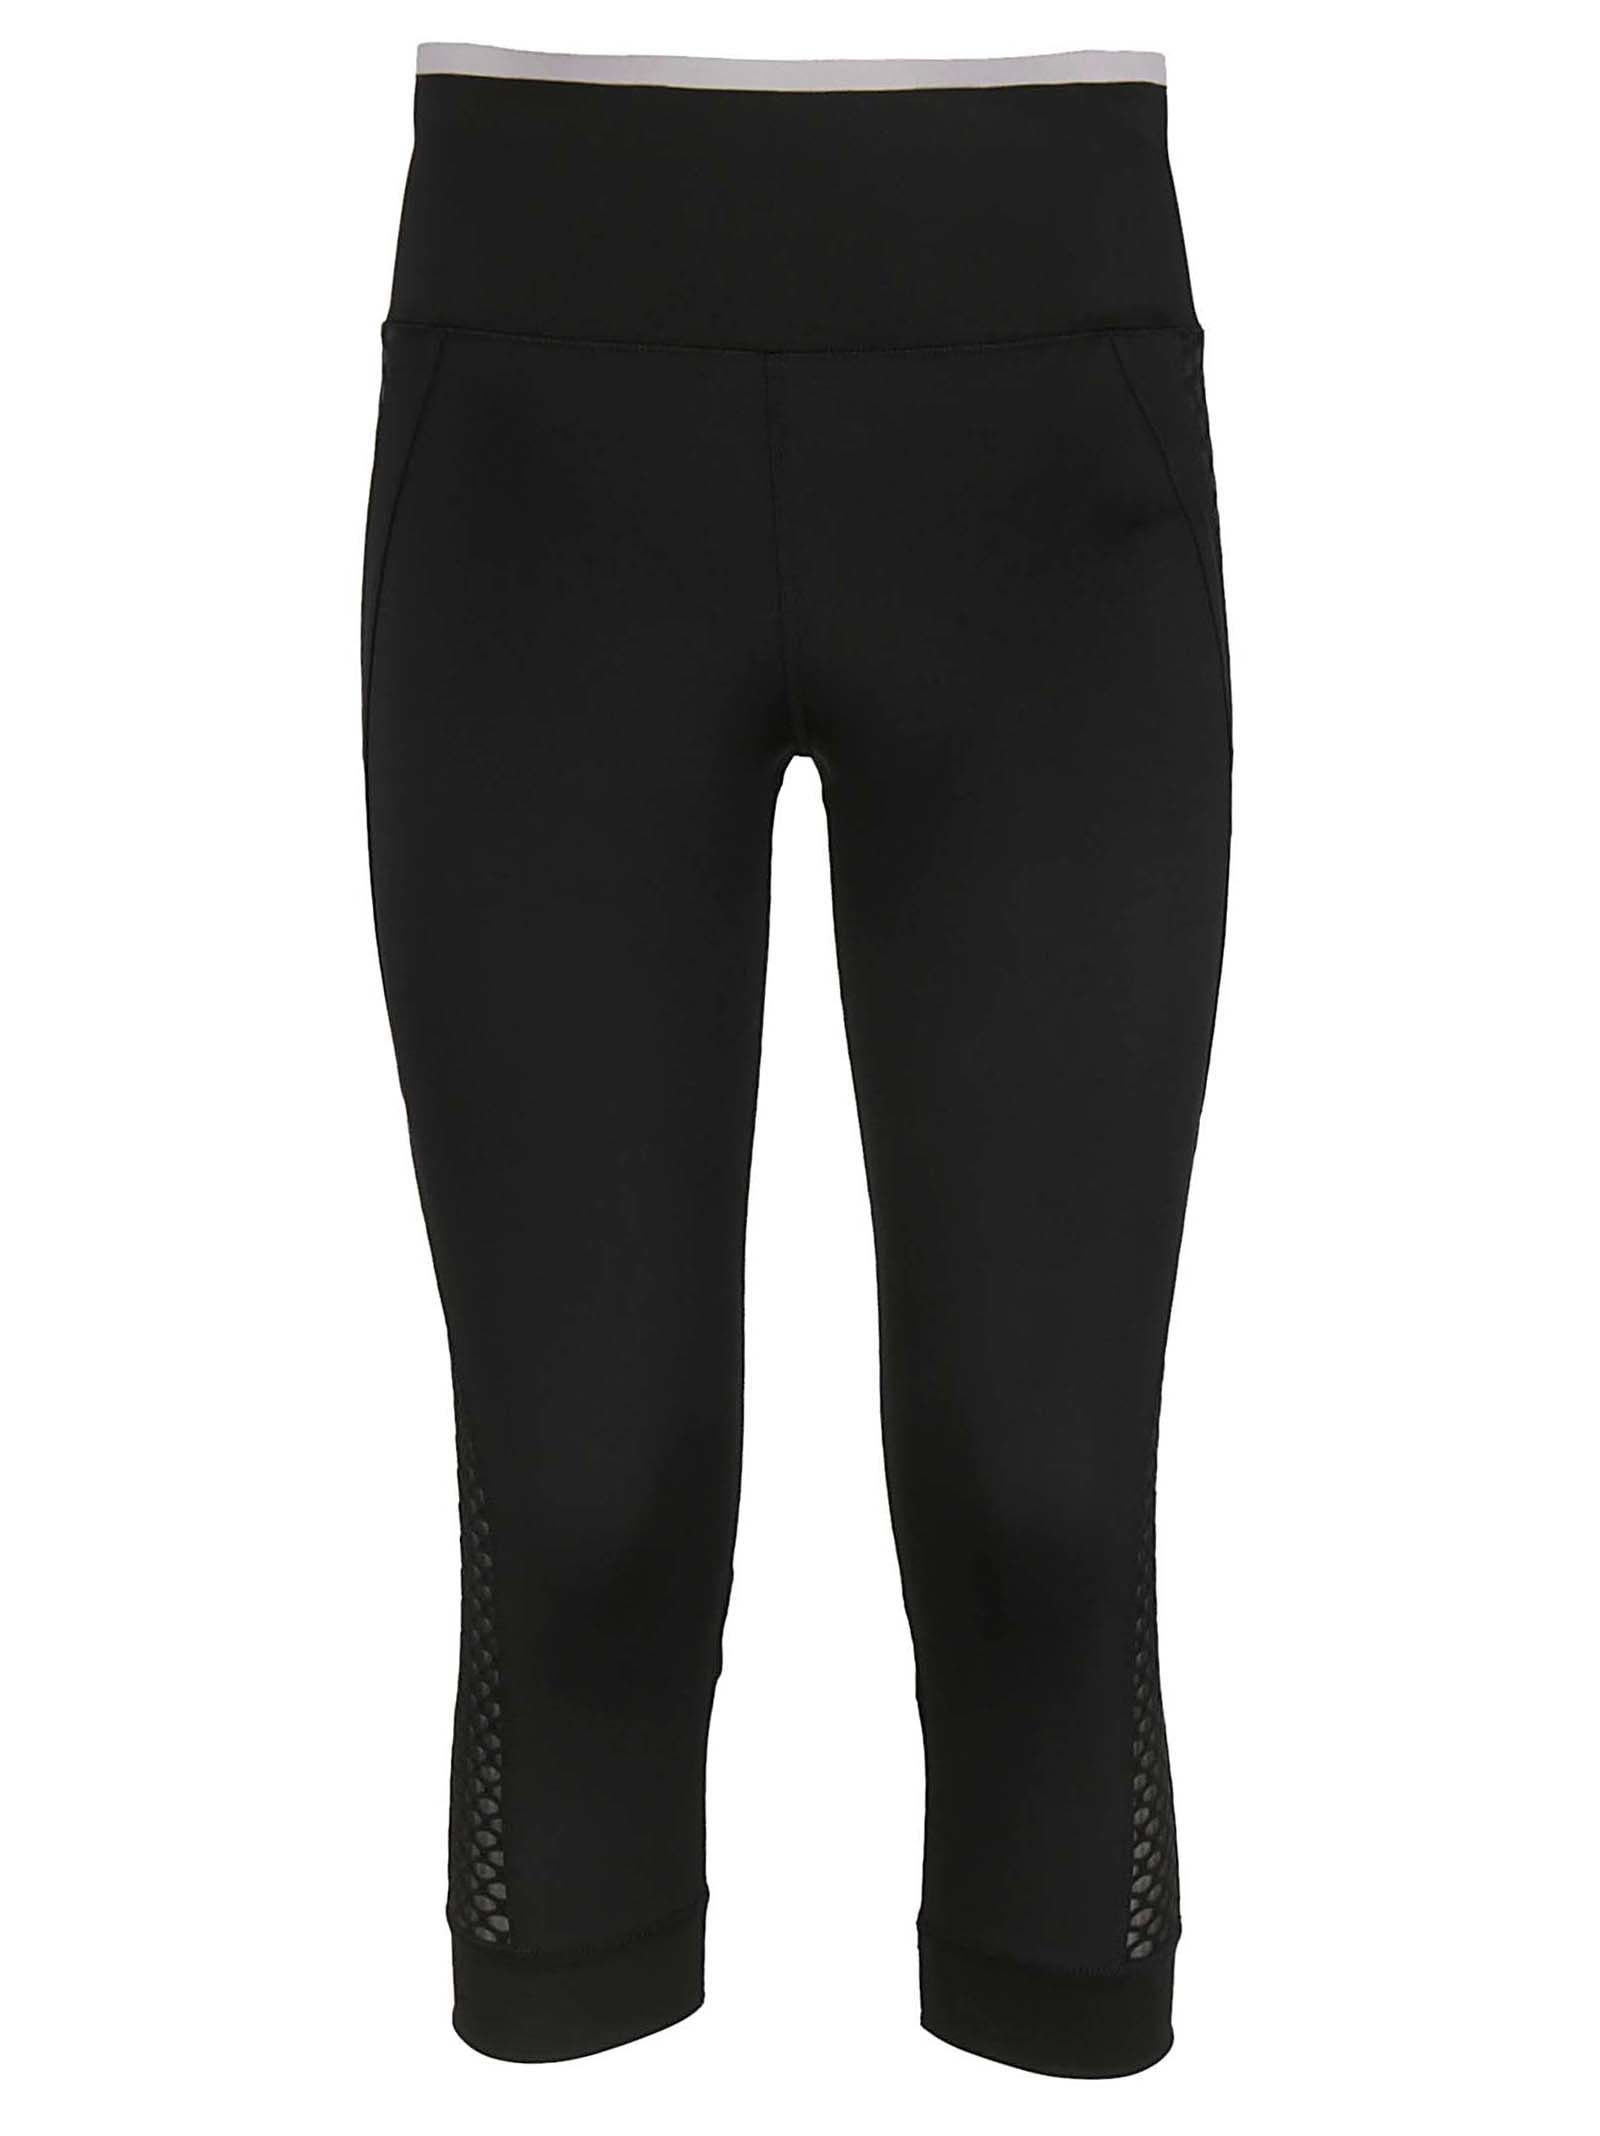 TRAINING ULTIMATE 3-4 TIGHTS from Italist.com